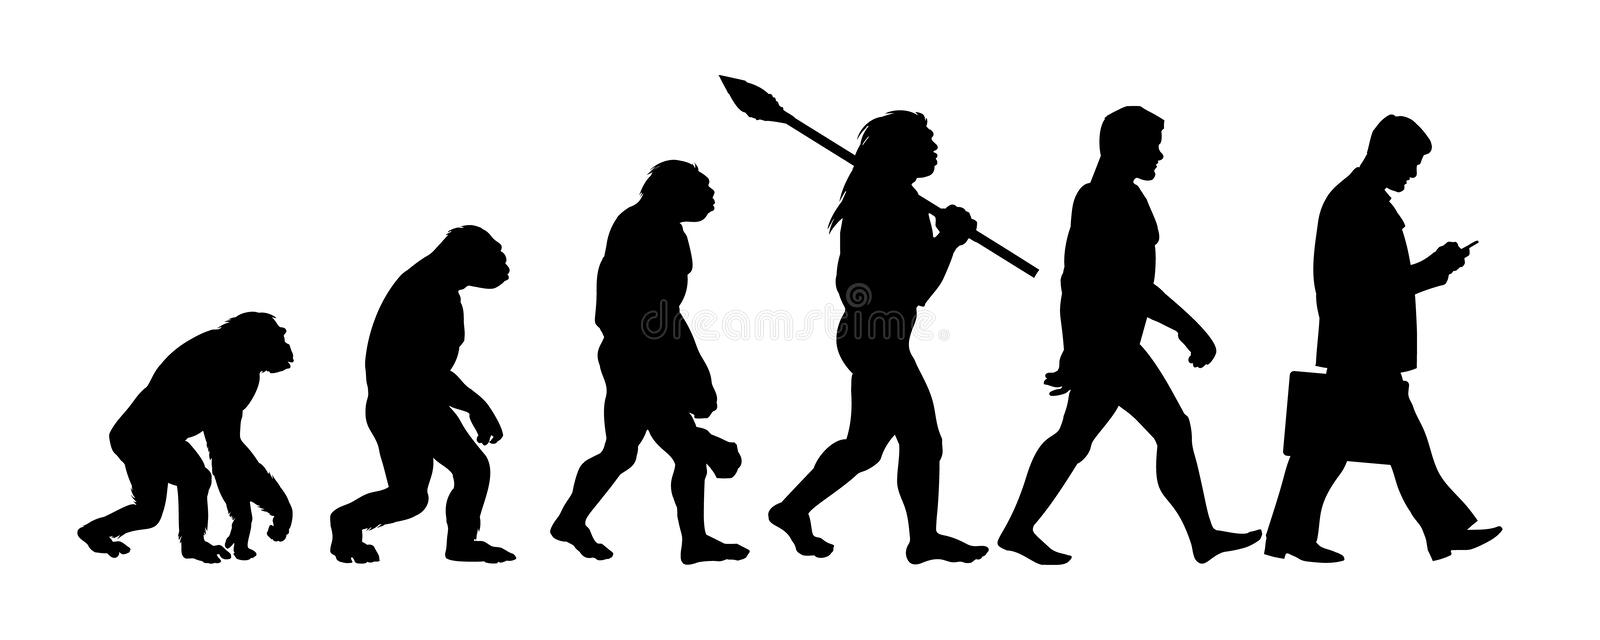 Theory of evolution of man silhouette. Human development from monkey to modern businessmen with briefcase talking on mobile phone. Hand drawn sketch vector vector illustration